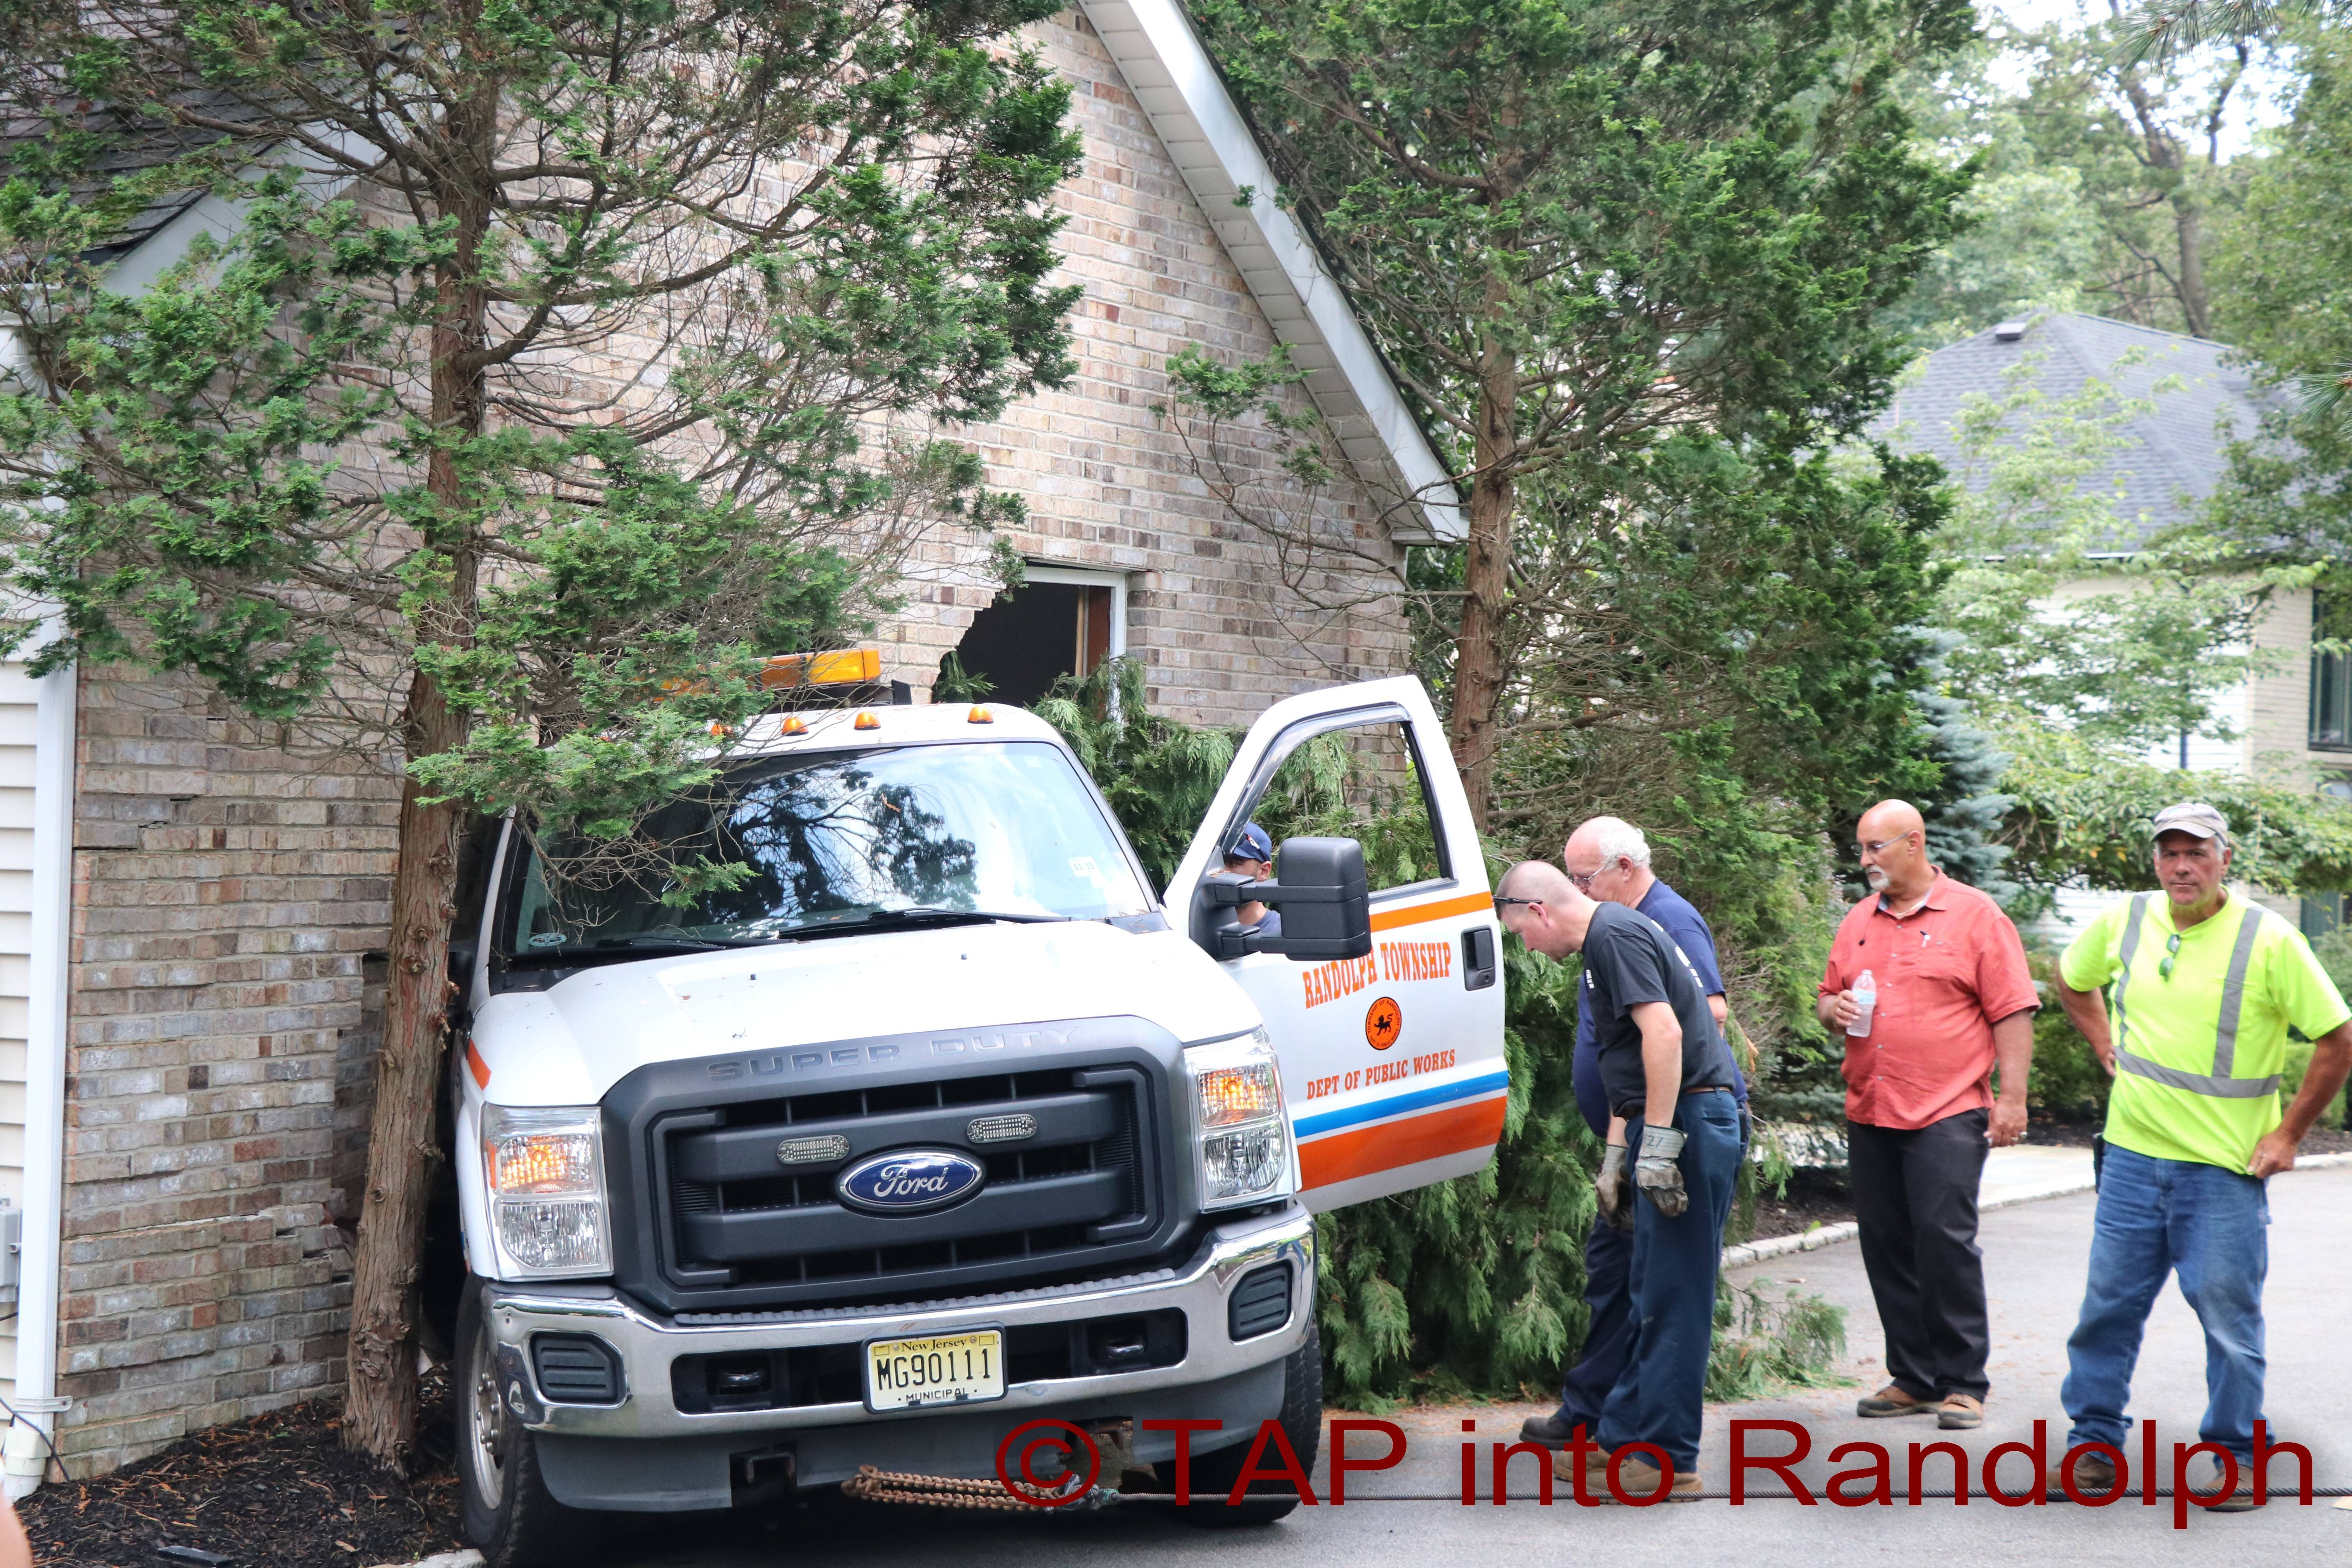 Runaway Vehicle Crashes Into House Randolph Police And